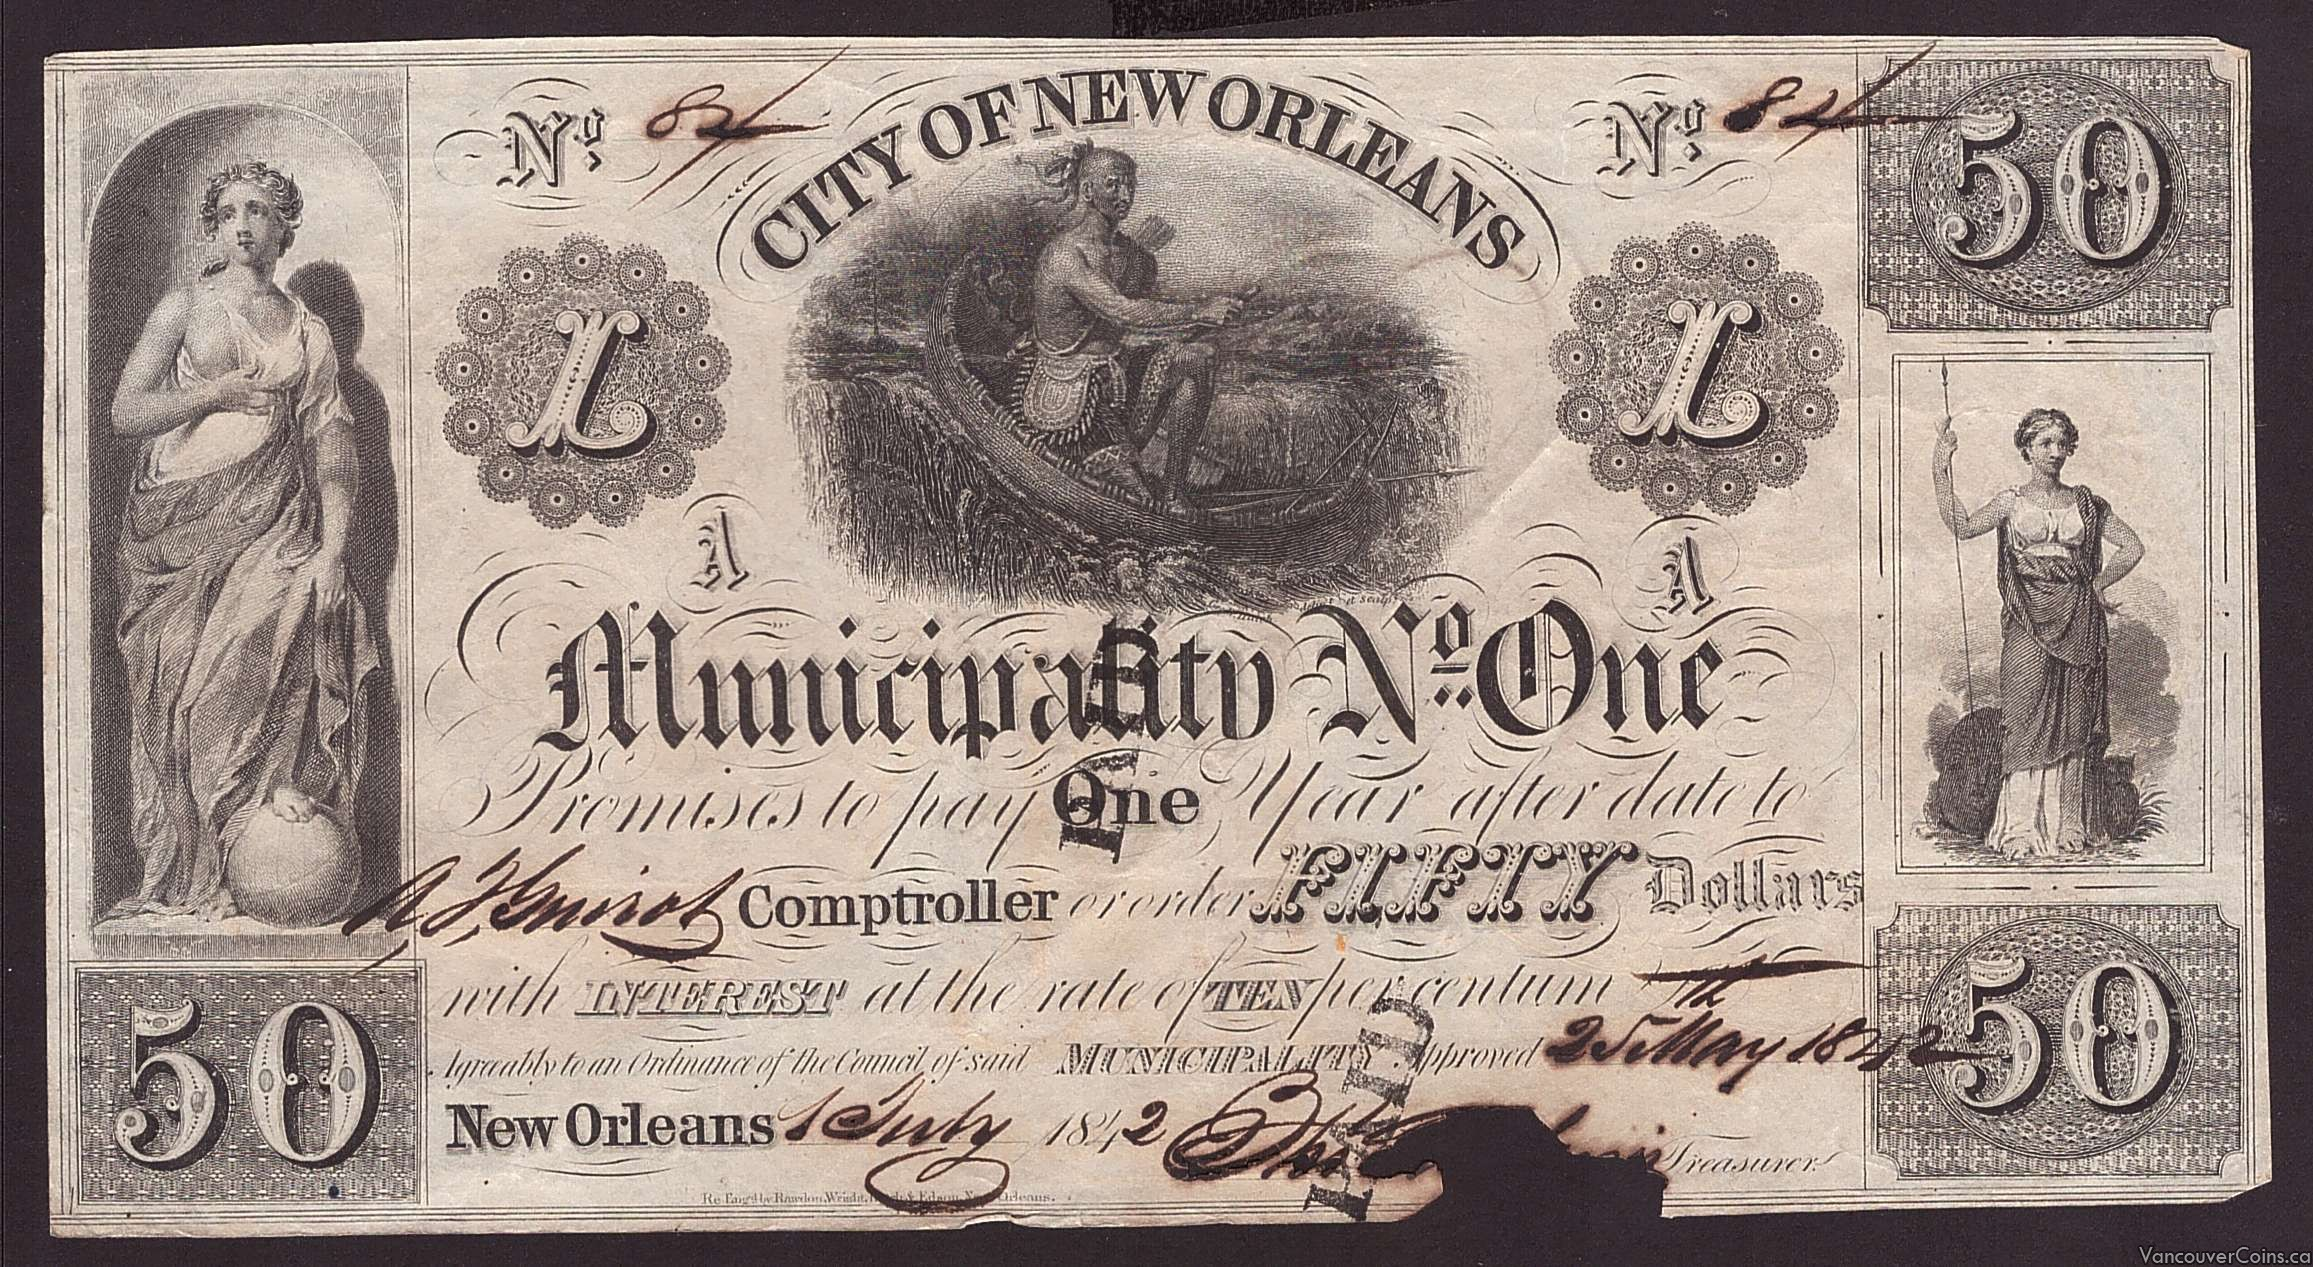 1842 $50 CITY OF NEW ORLEANS No 1 bond